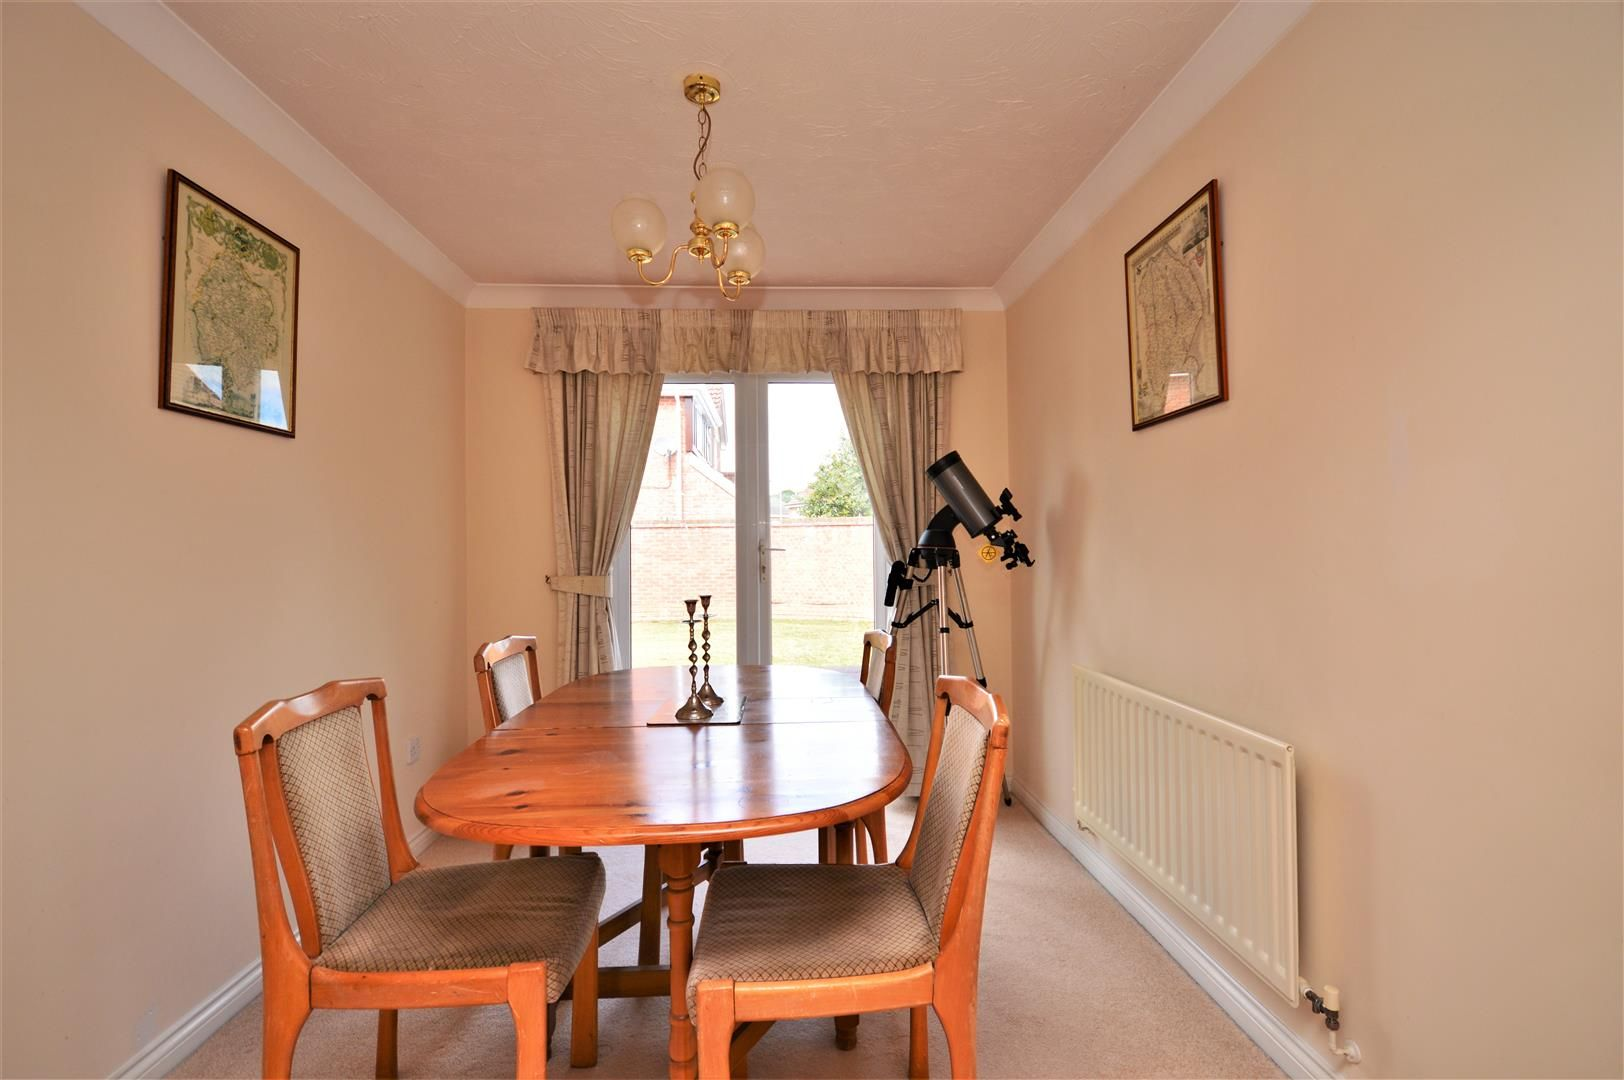 4 bed detached for sale in Belmont 5